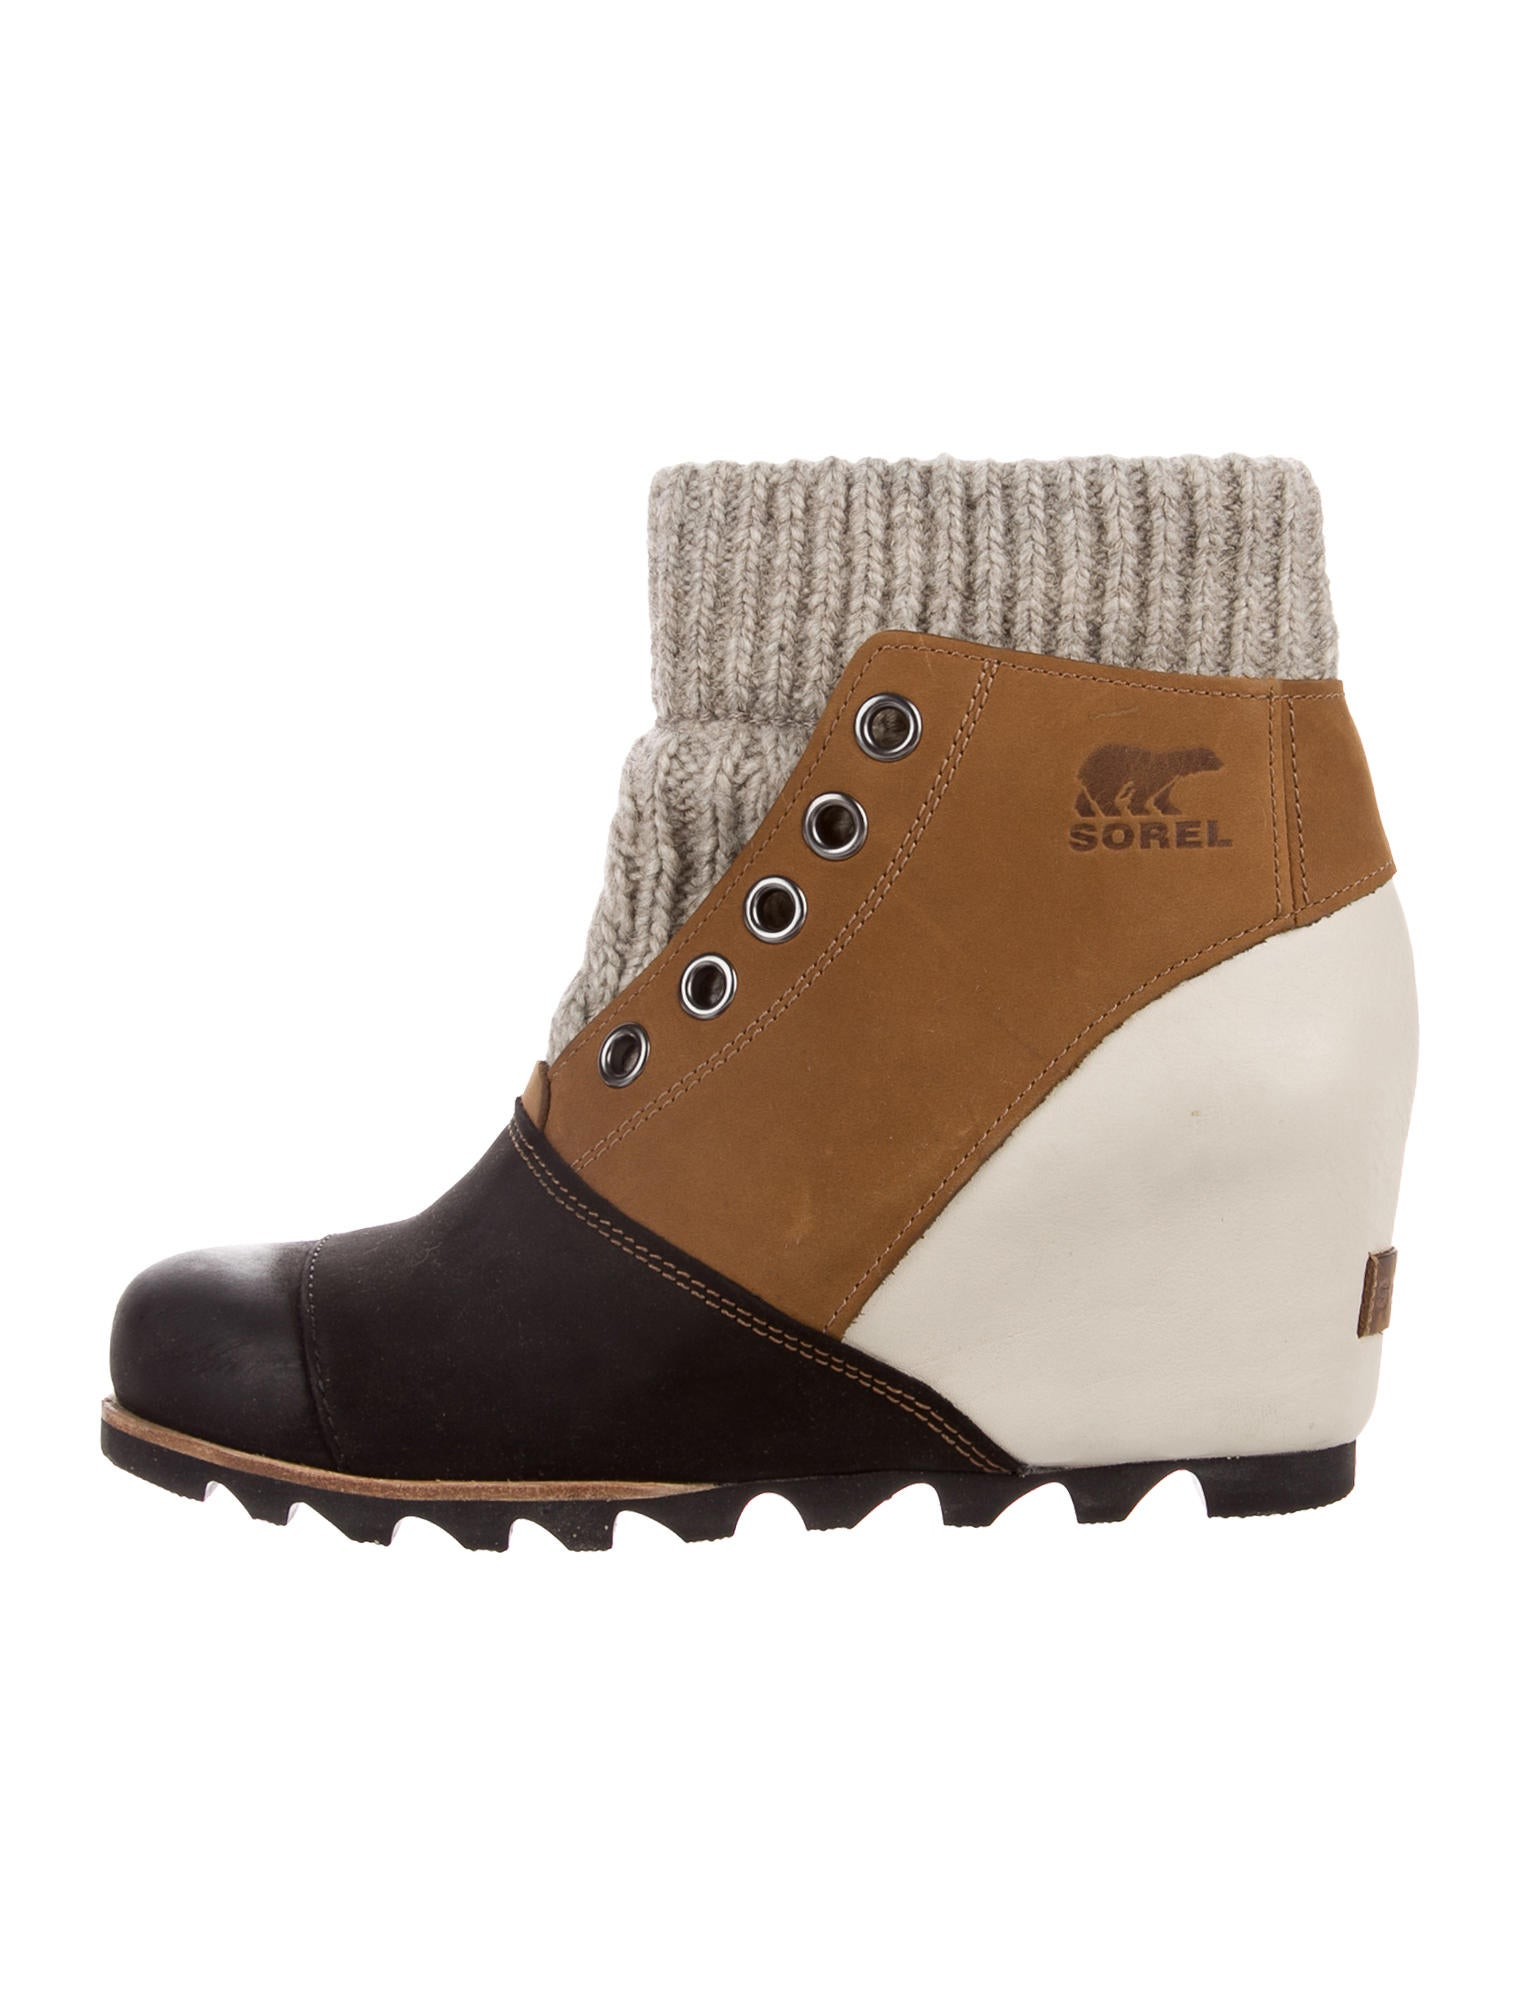 Sorel Joanie Sweater Wedge Ankle Boots W Tags Shoes Wsorl20358